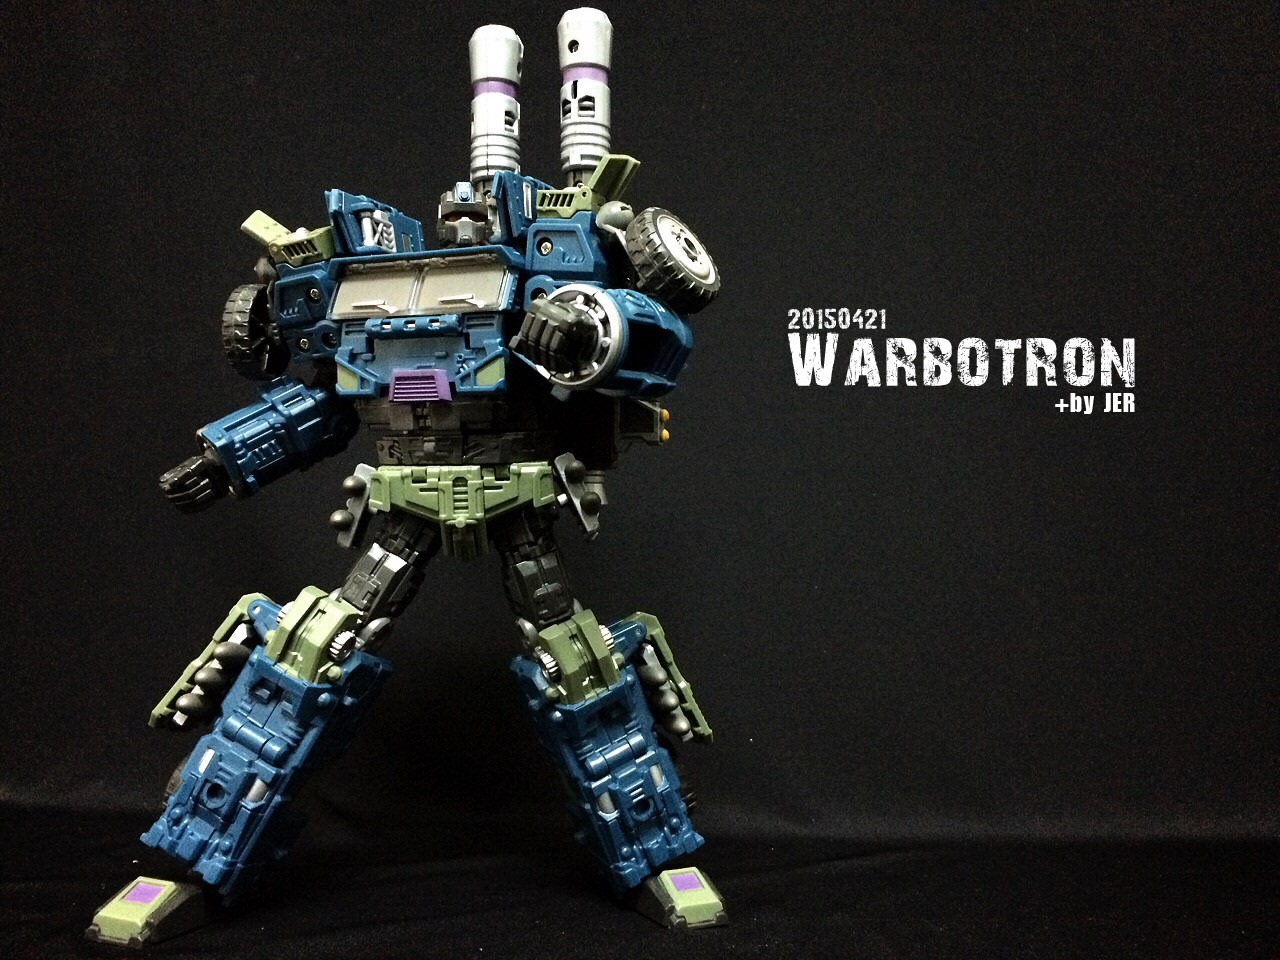 Warbotron - WB01 (Unofficial Bruticus)-11134077_633409316758575_8976682156006331715_o-1-.jpg